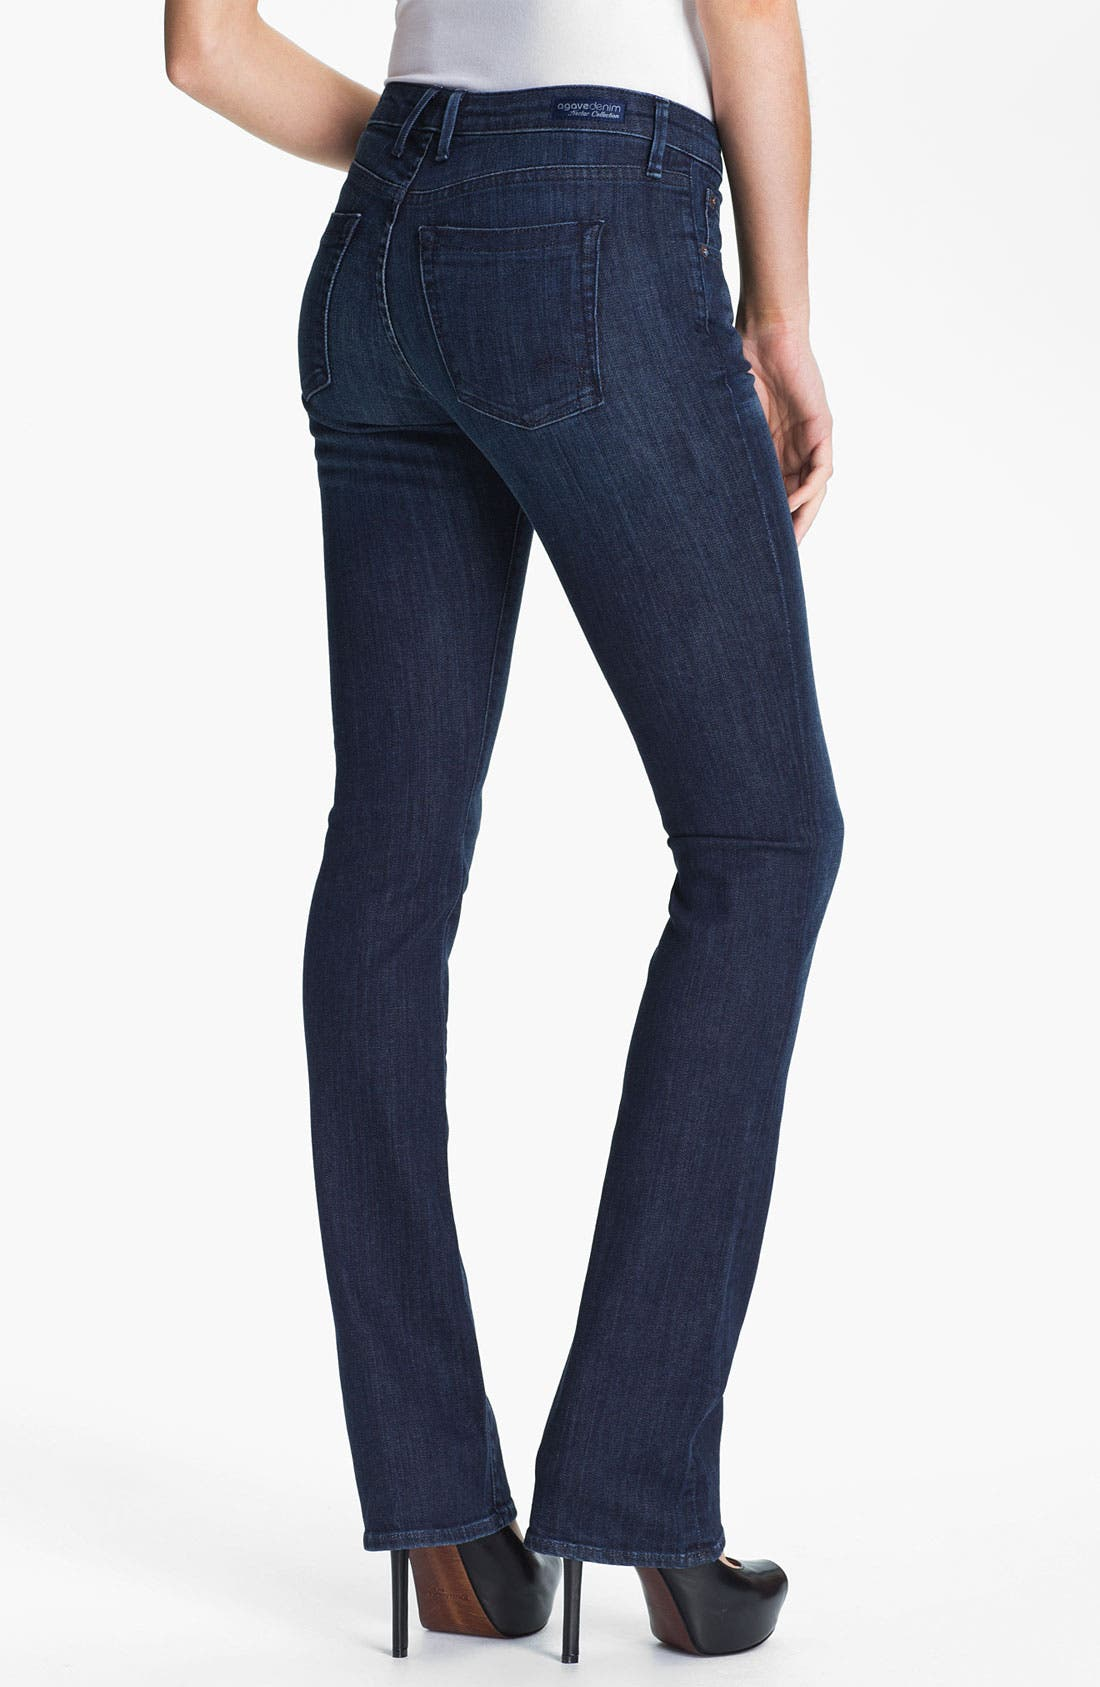 Alternate Image 2  - Agave 'Linea' Slim Bootcut Jeans (Norte) (Online Exclusive)